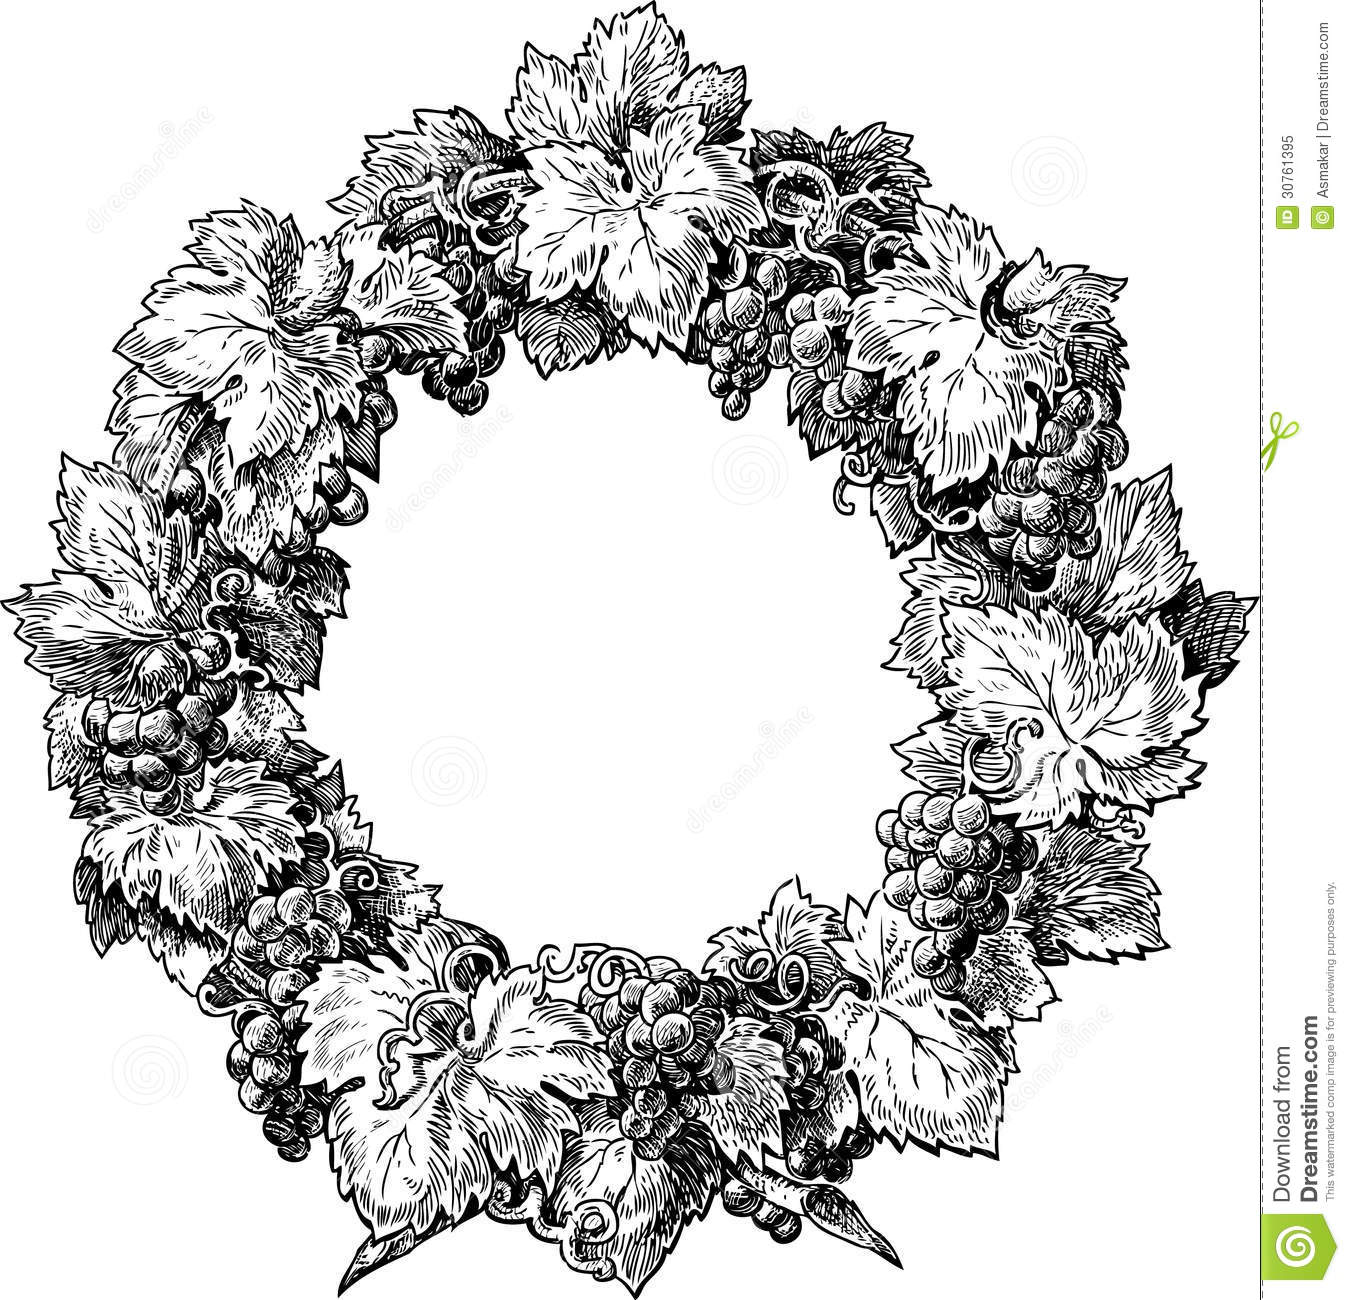 Wreath From A Grapevine Royalty Free Stock Photo - Image: 30761395